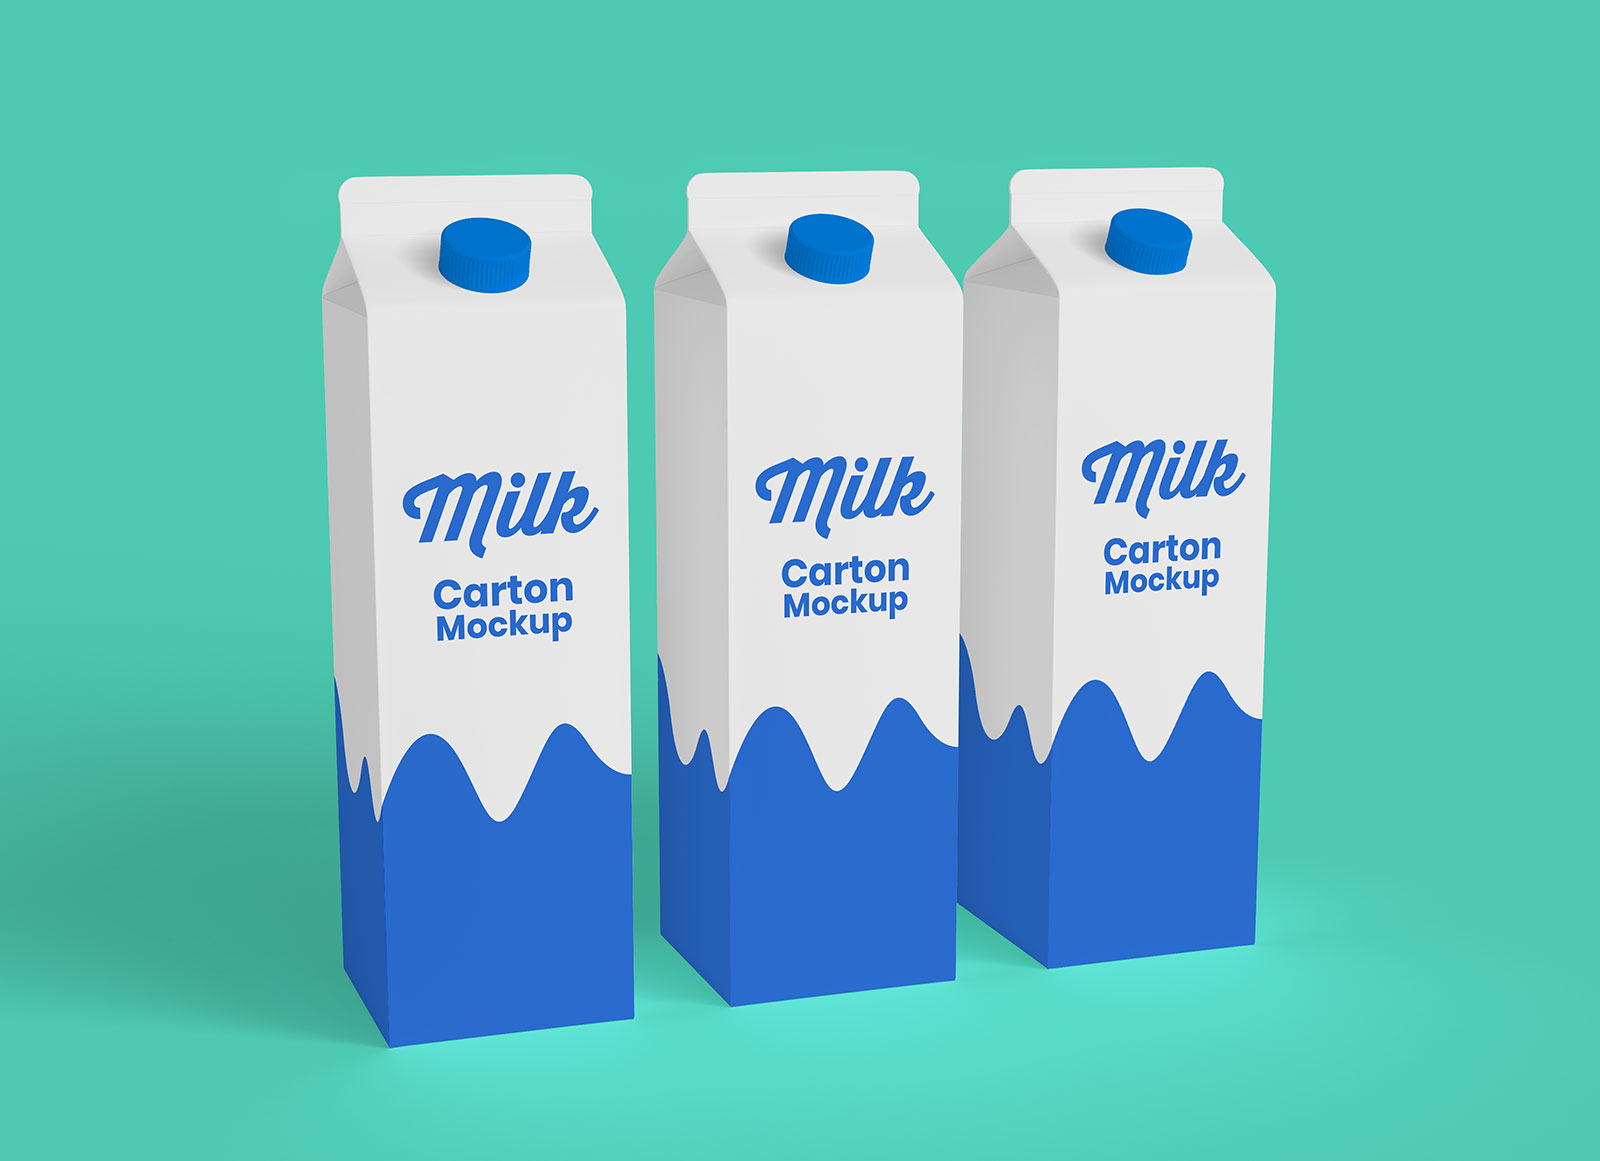 Free-Juice-Milk-Carton-Mockup-PSD-Set